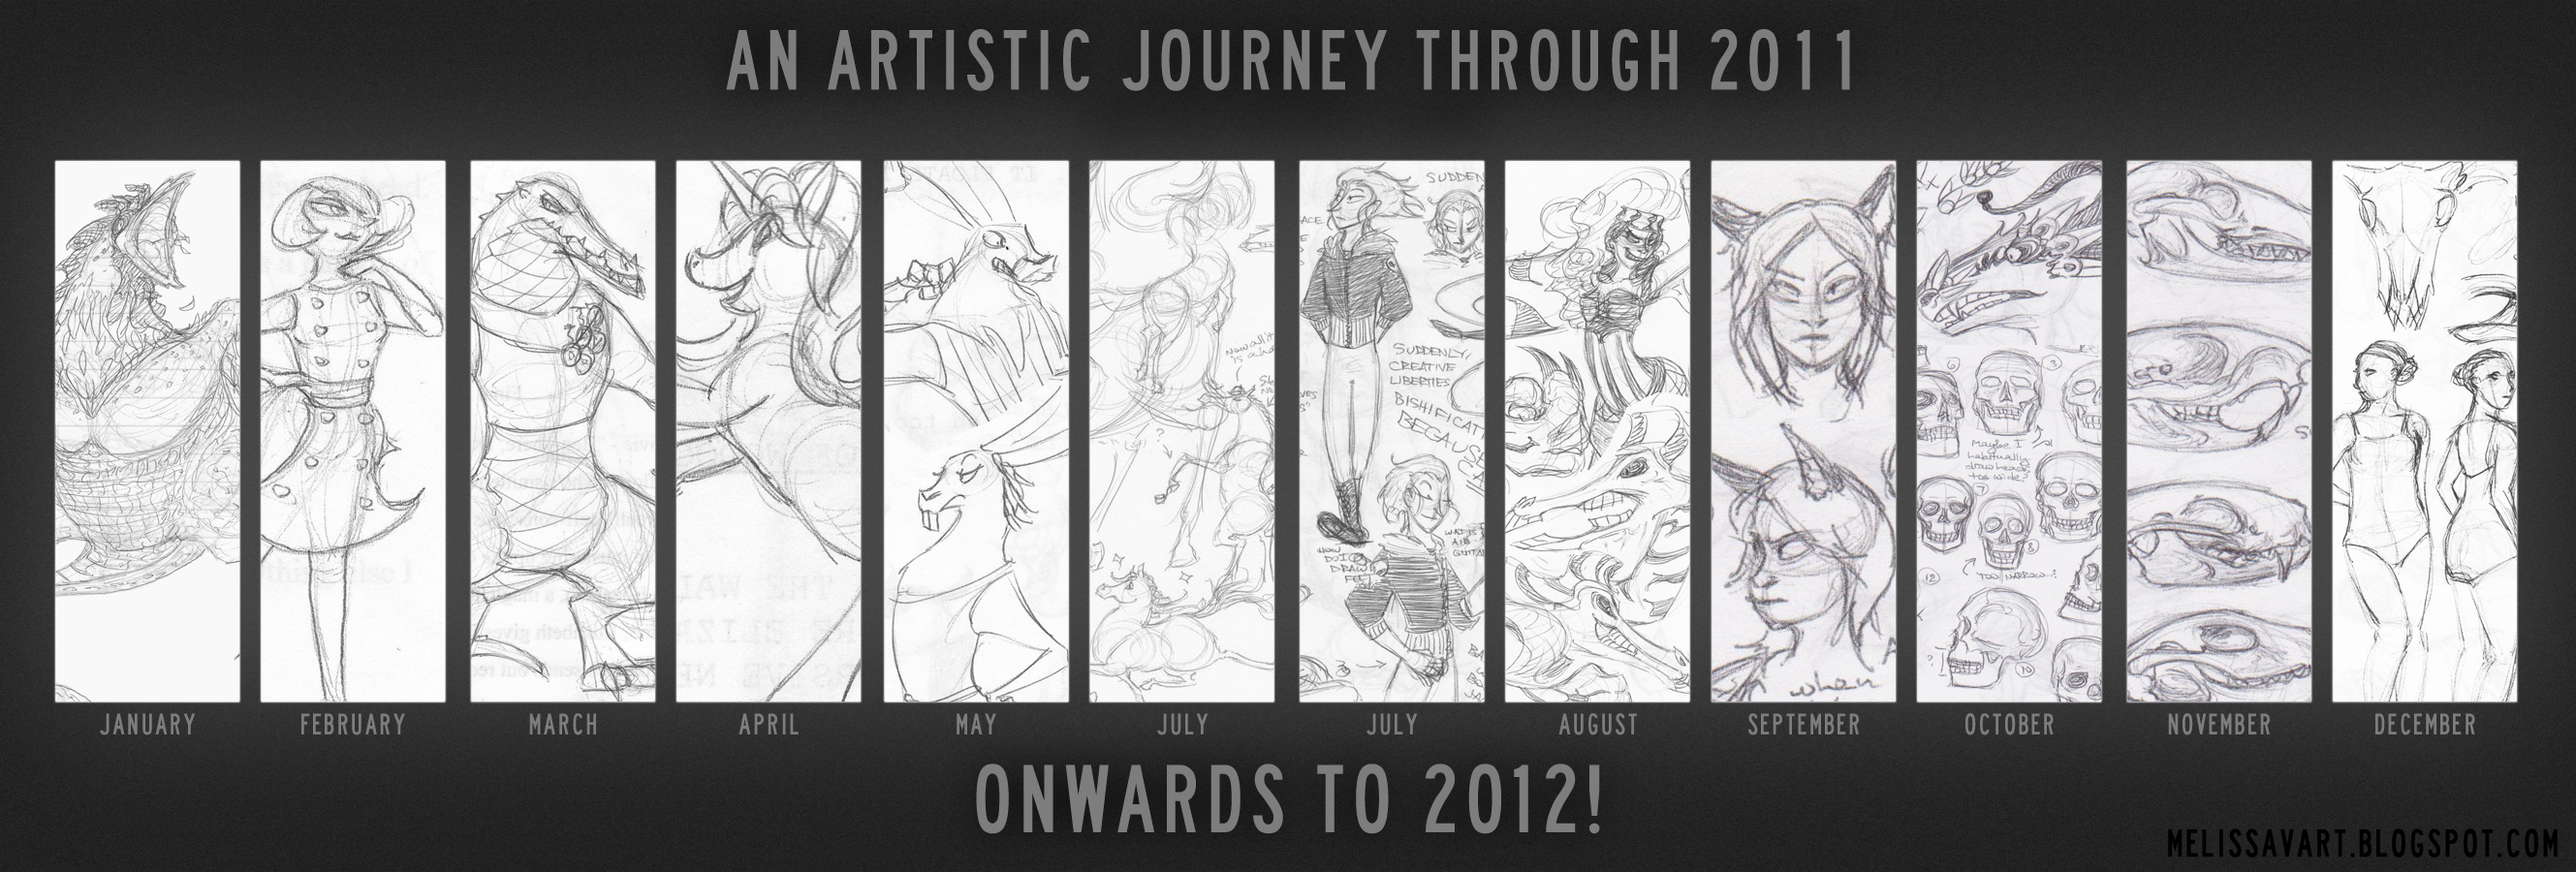 Artistic Journey Through 2011